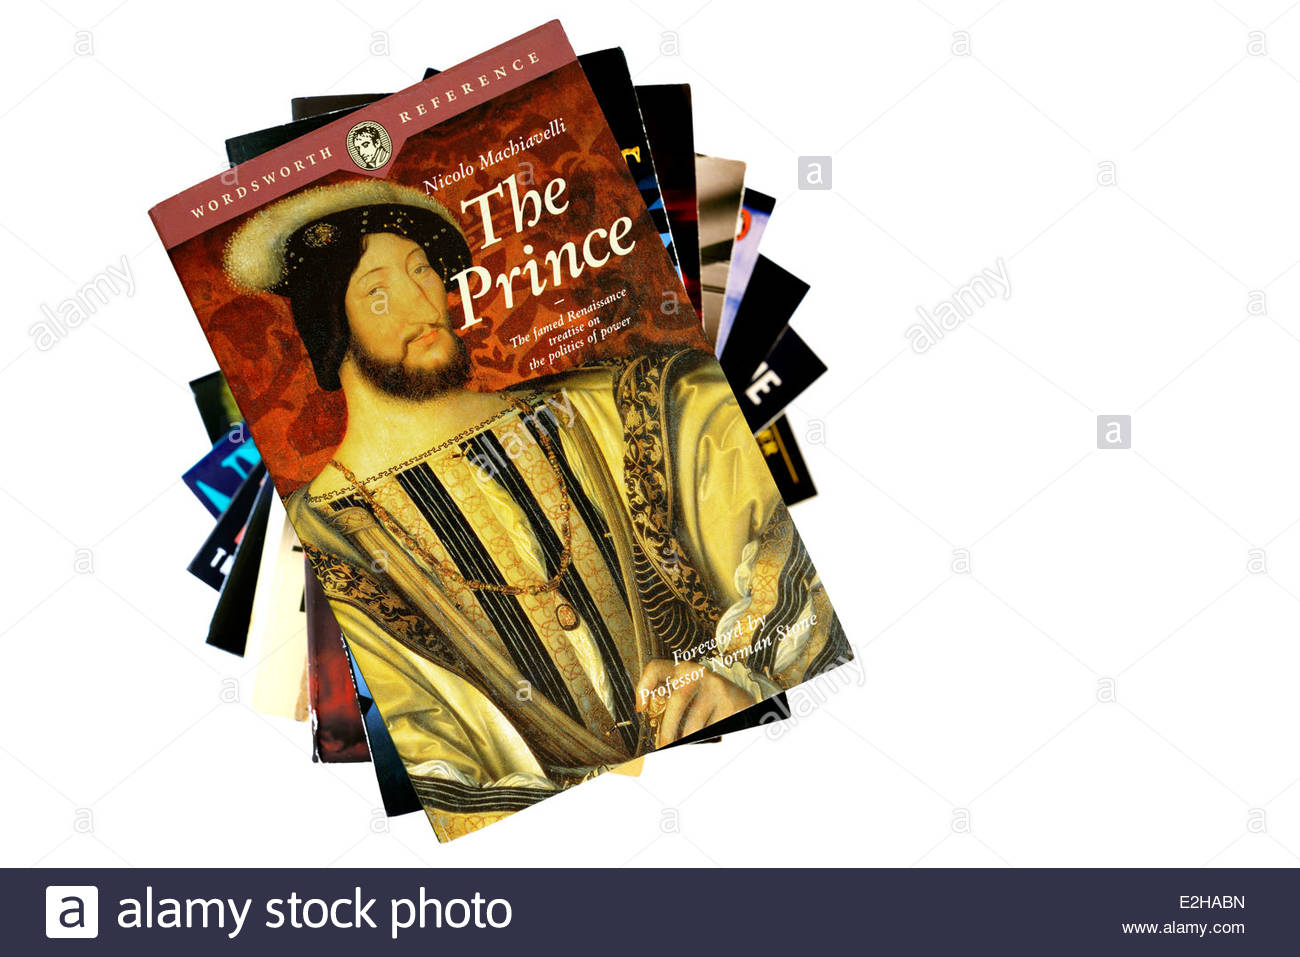 Nicolo Machiavelli treatise The Prince, stacked used books, England - Stock Image